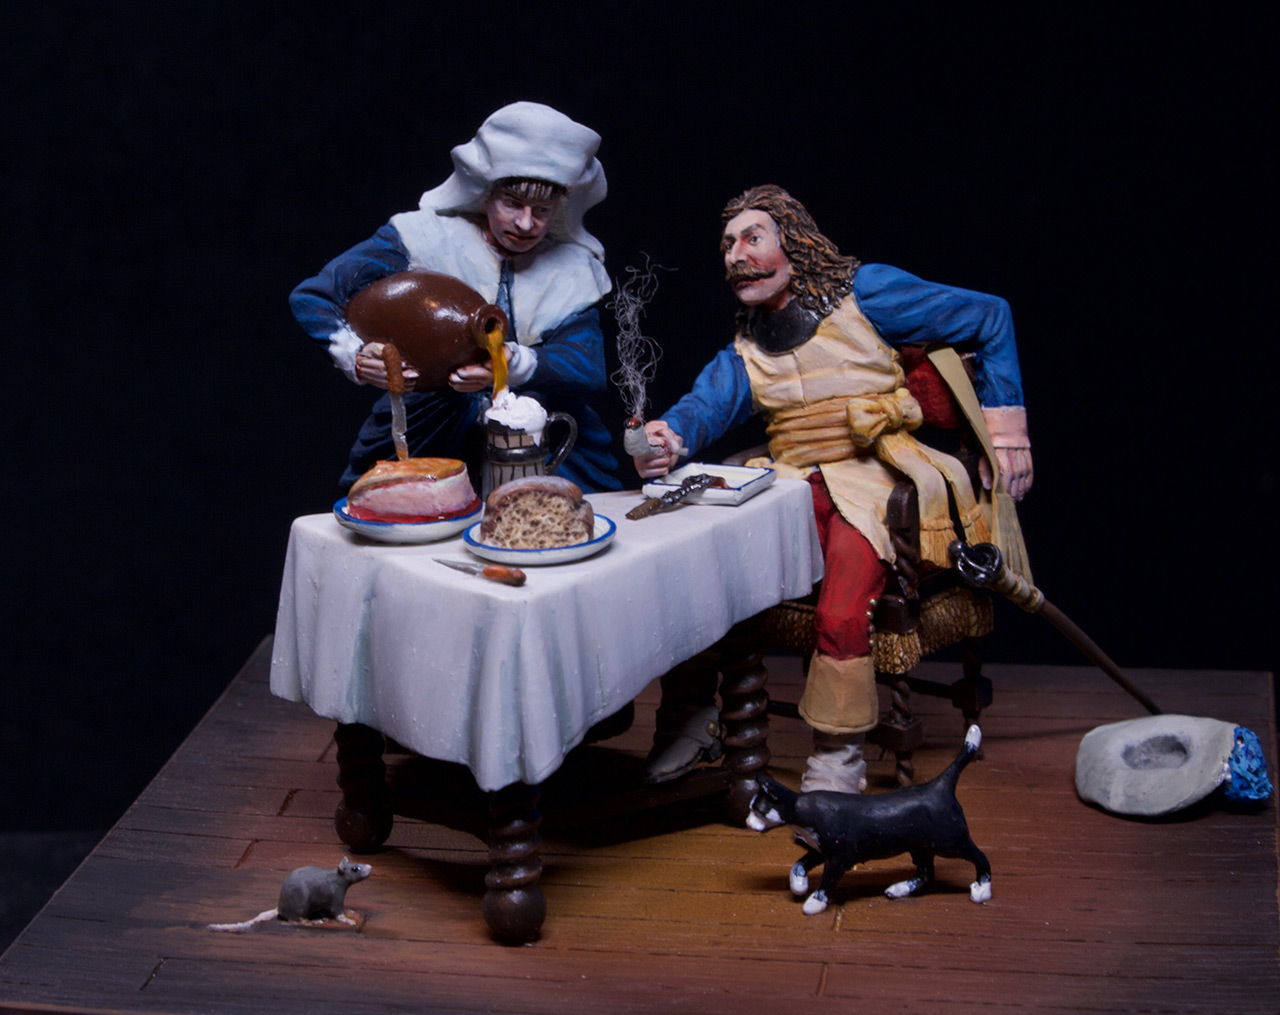 Dioramas and Vignettes: Waitress and cavalier, photo #8